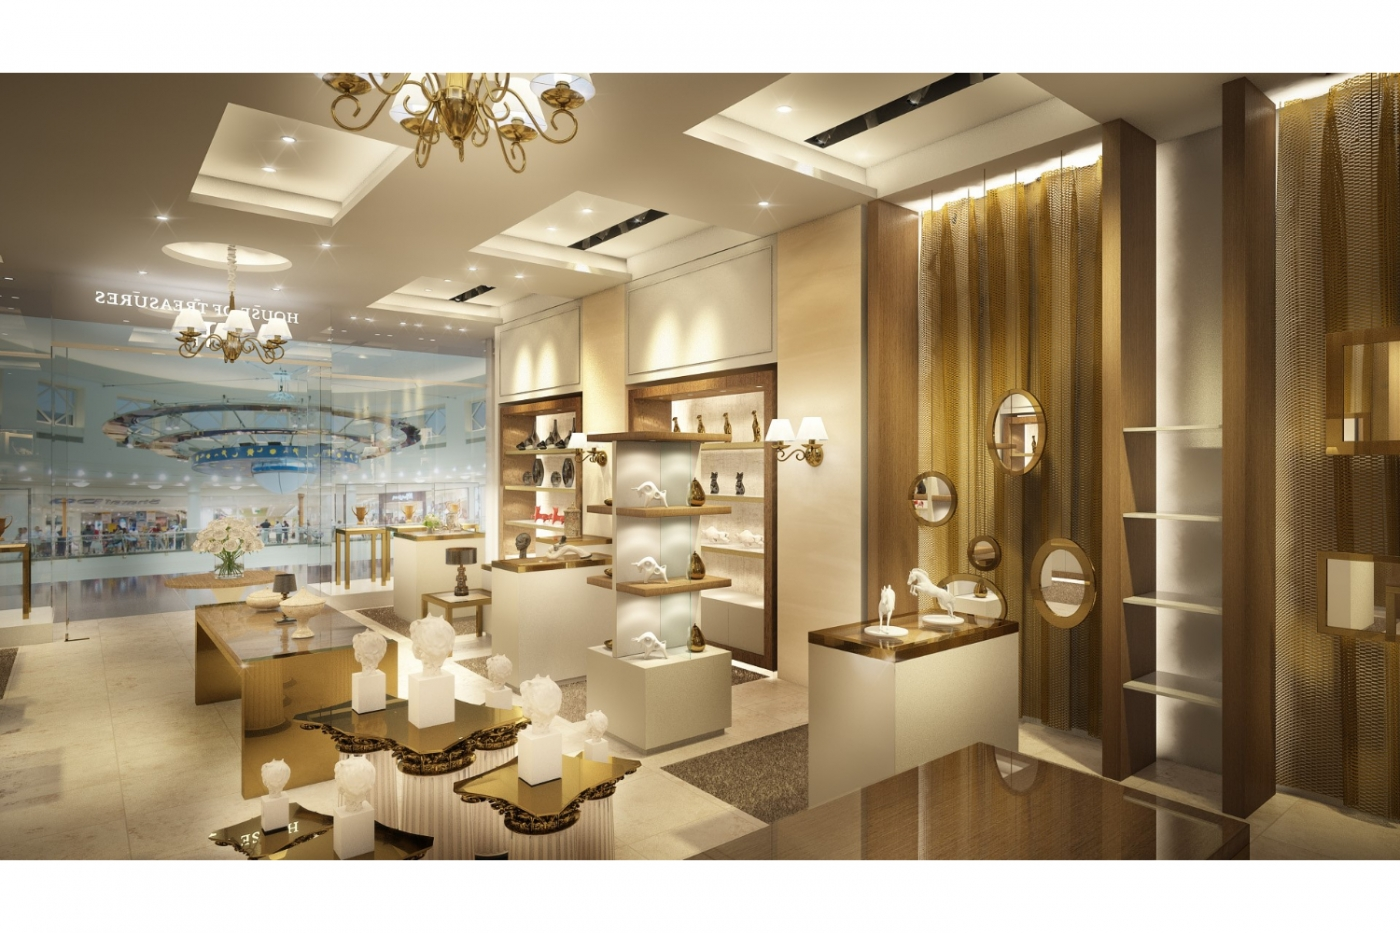 House of Tresures Interior Design Projects interior design project House Of Treasures: Incredible Interior Design Projects retail abudhabi3 2 1400x933